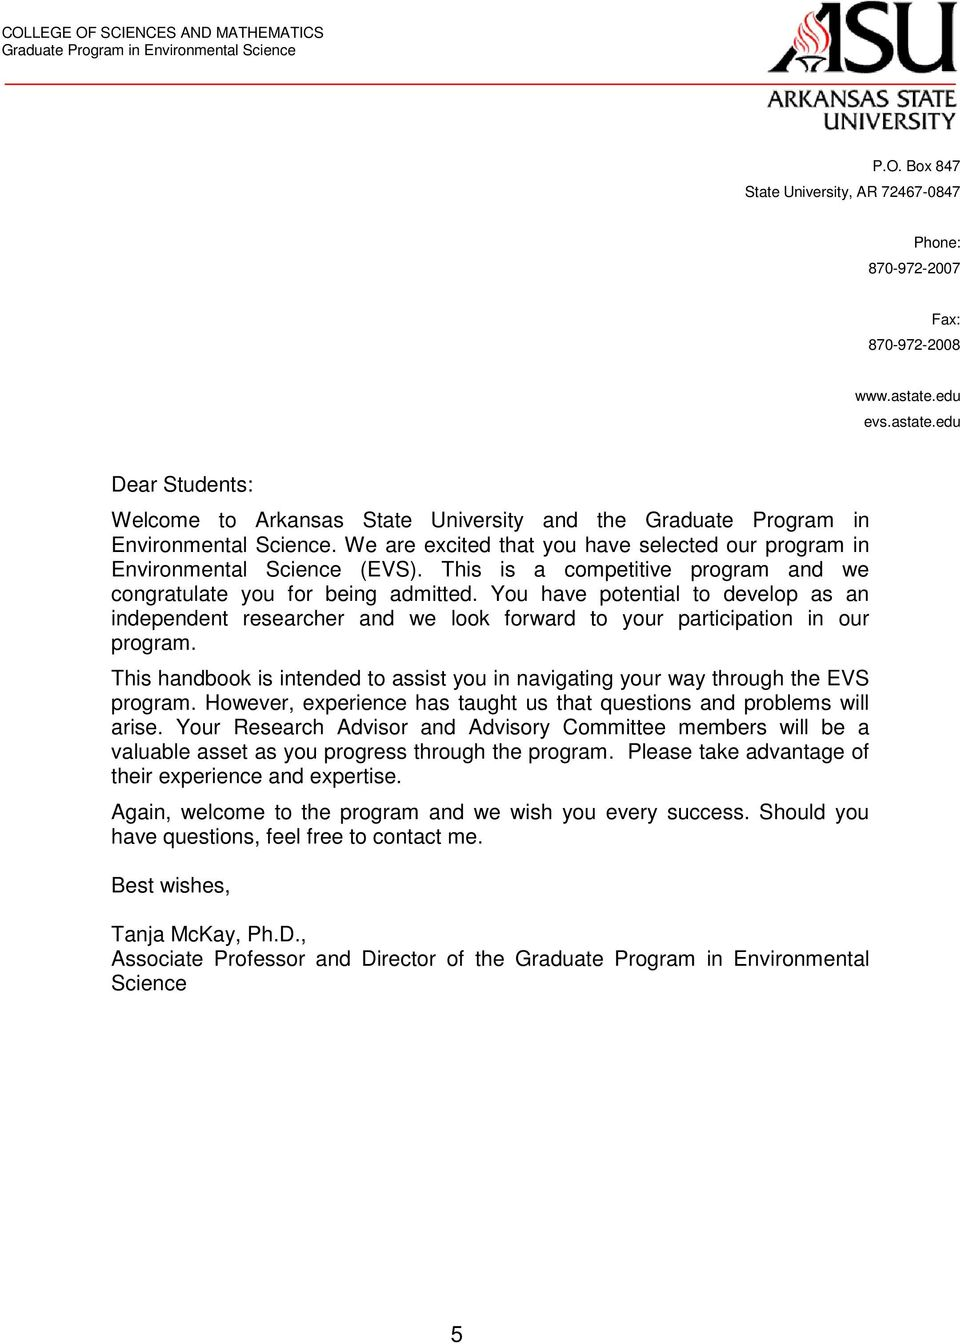 We are excited that you have selected our program in Environmental Science (EVS). This is a competitive program and we congratulate you for being admitted.